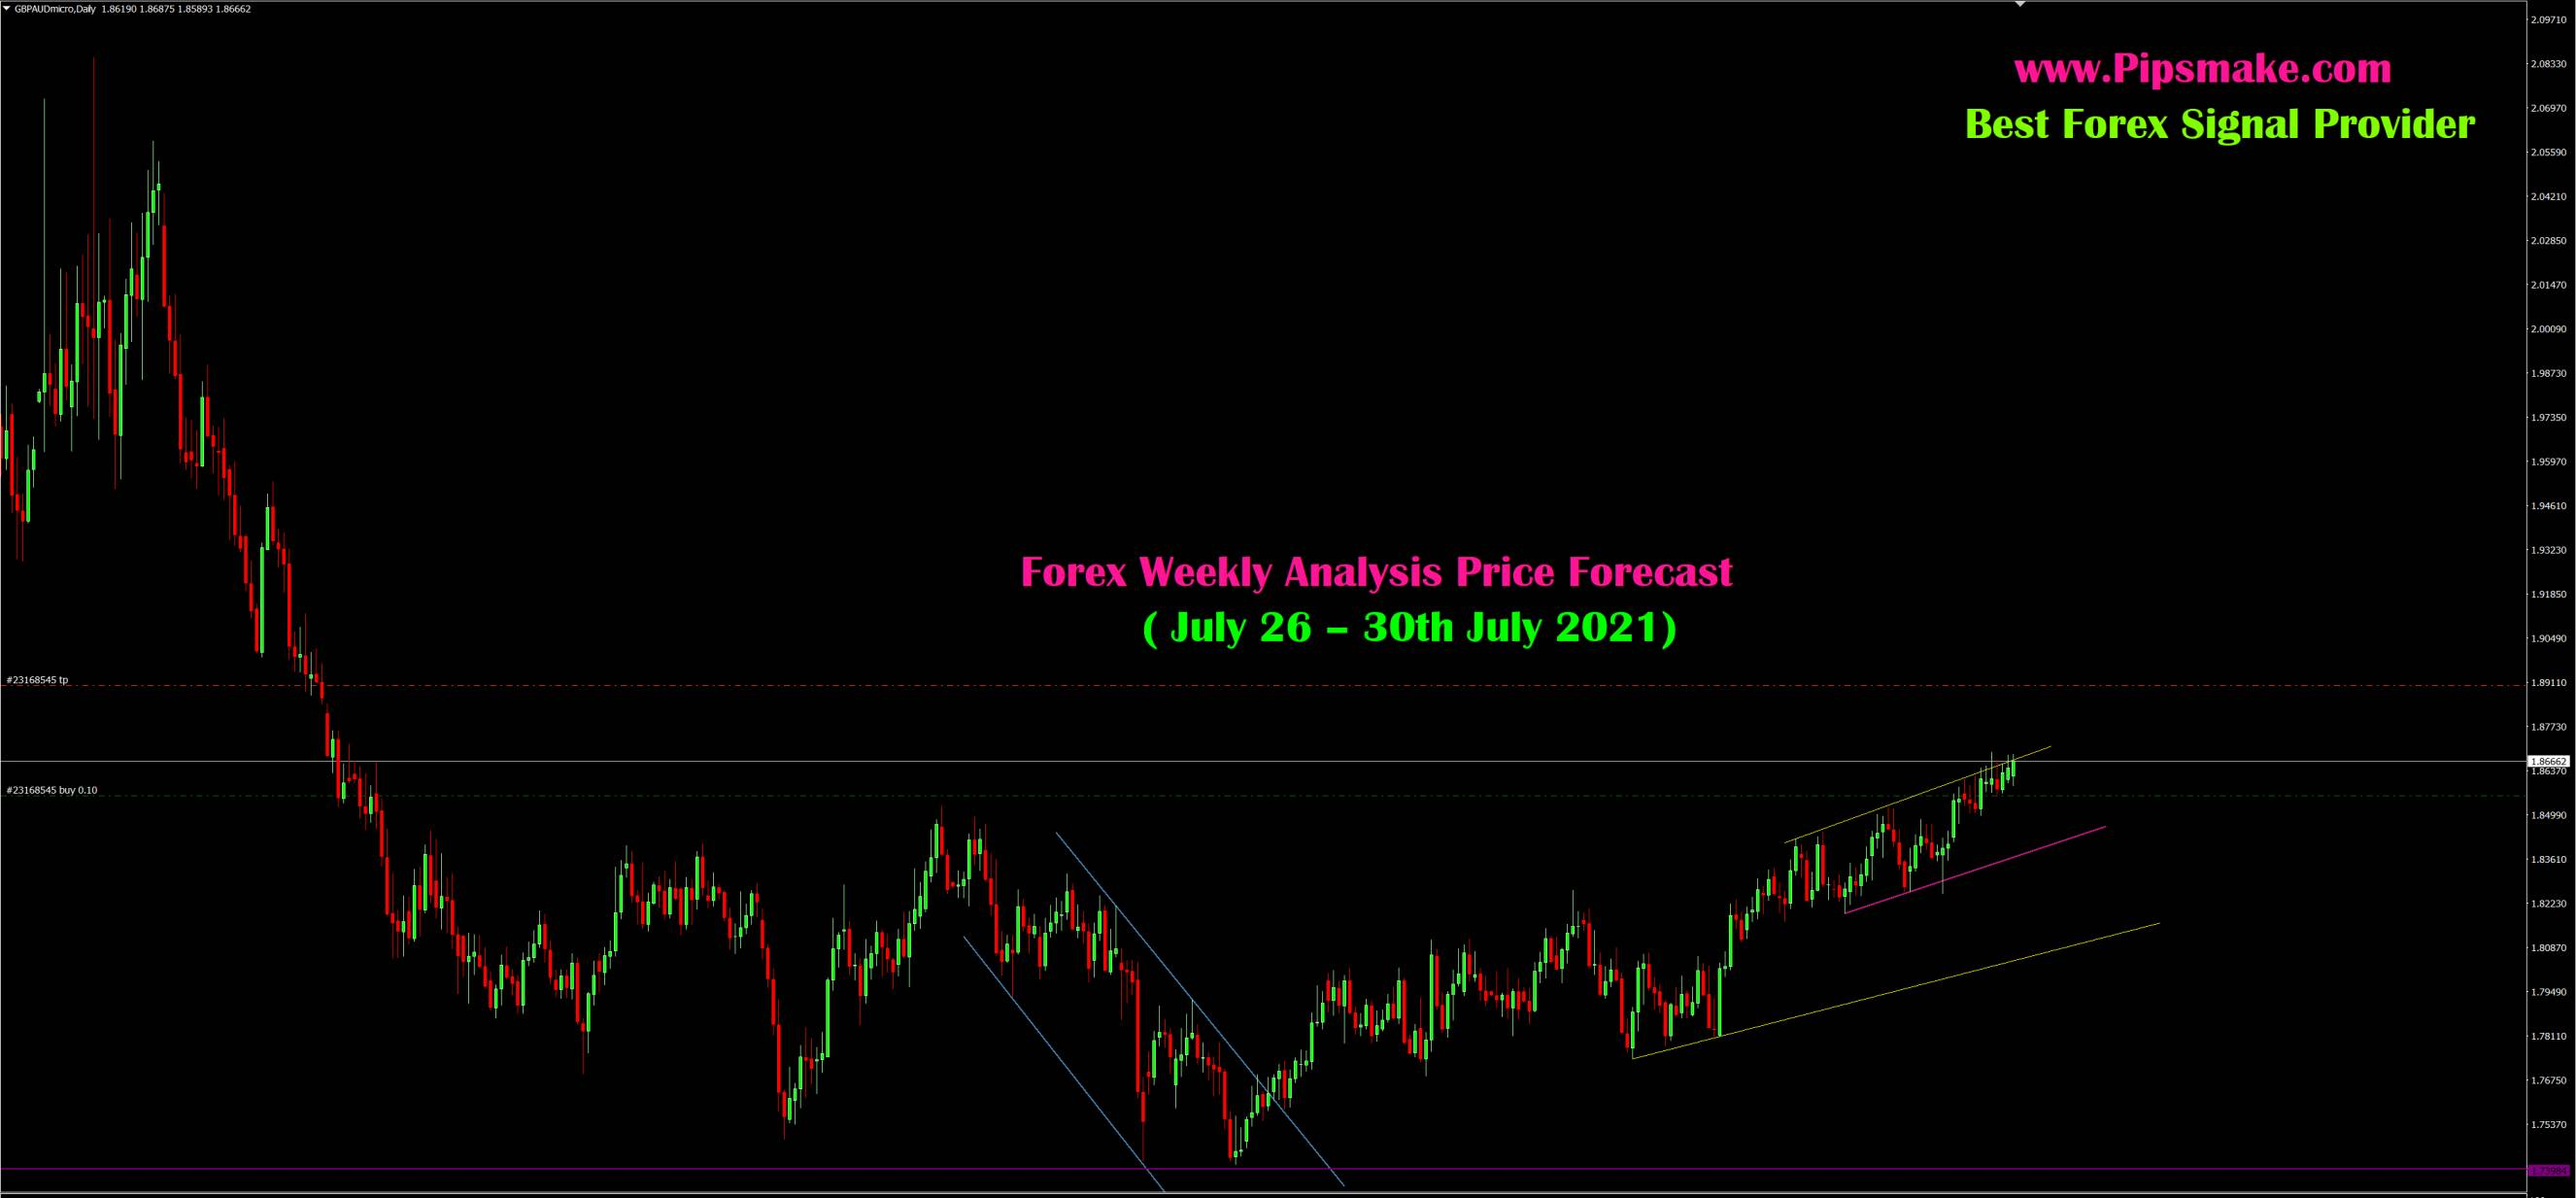 Gold Forex Signal Provider